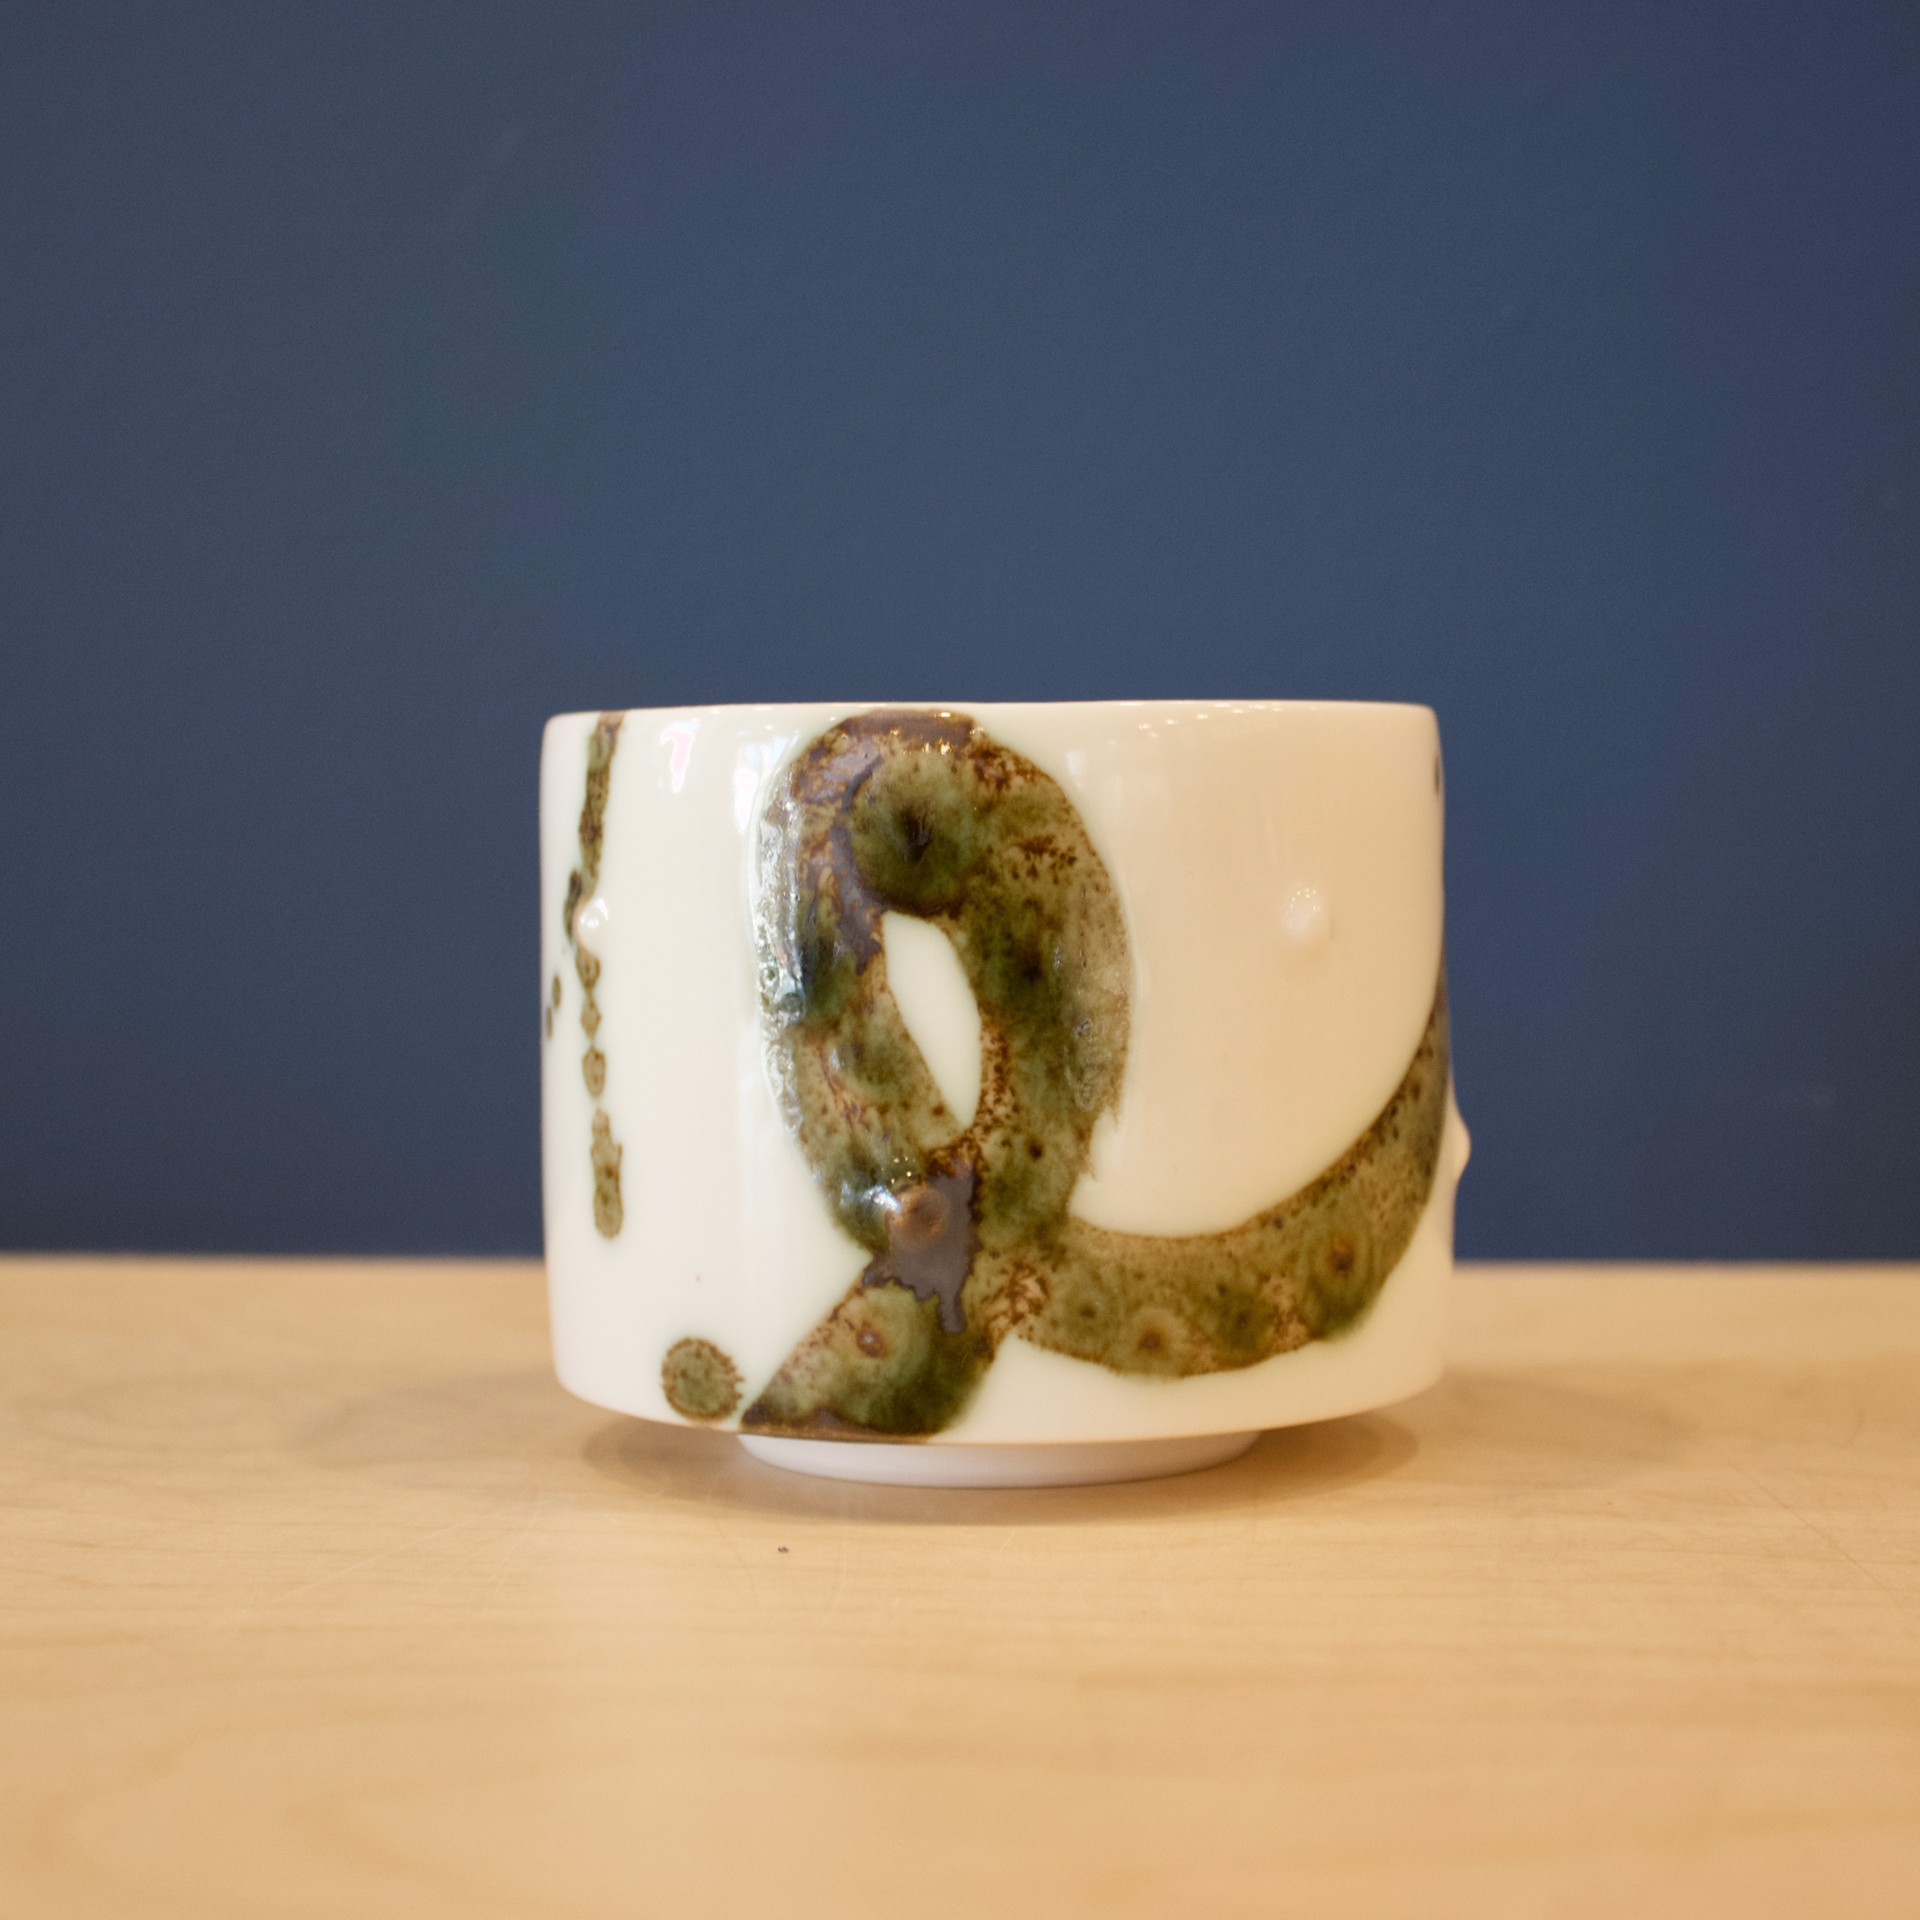 Splash Bump Teabowl by Patricia Thom